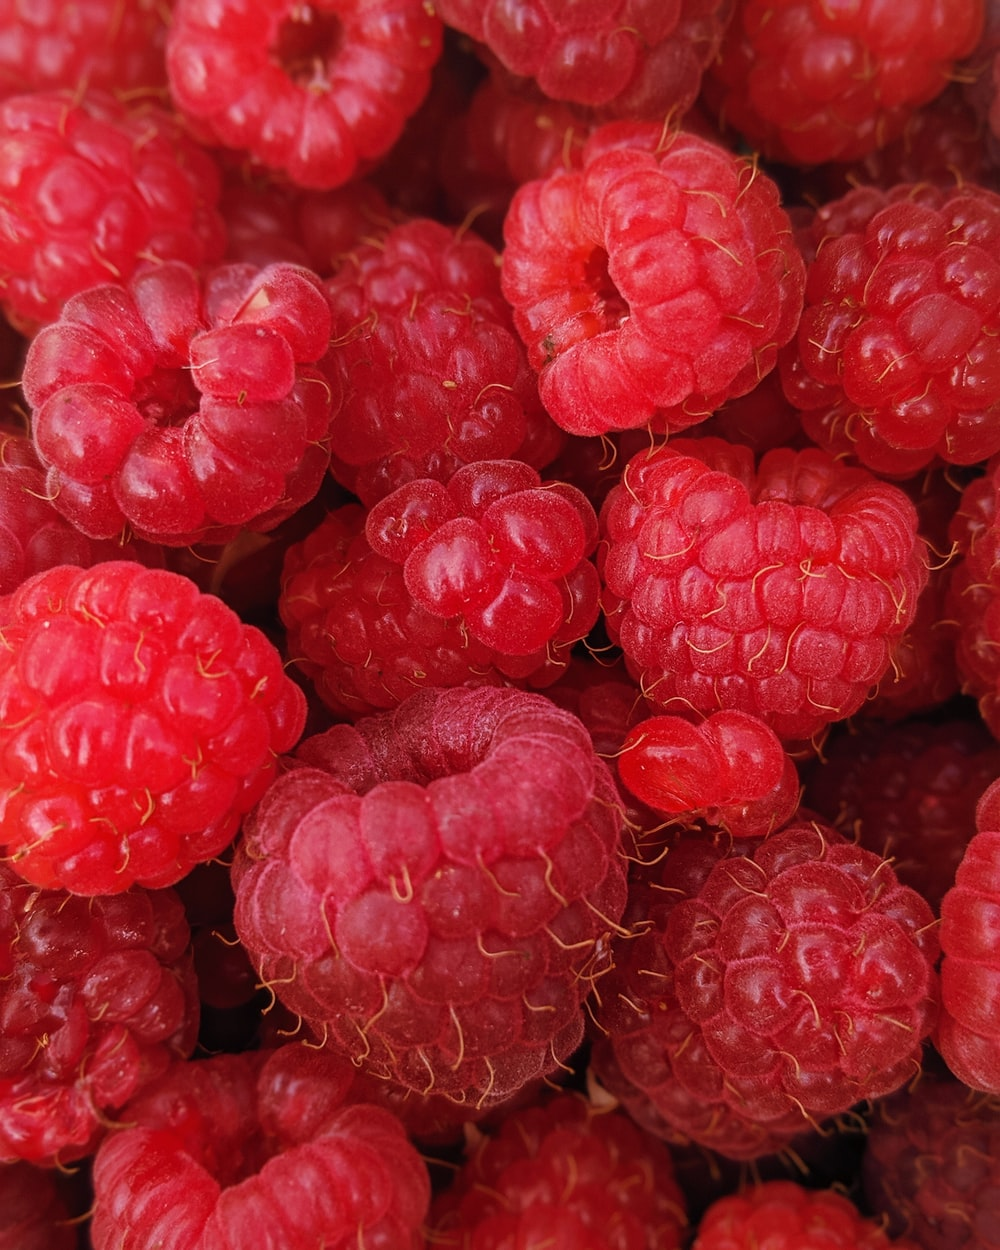 macro photography of raspberry fruits